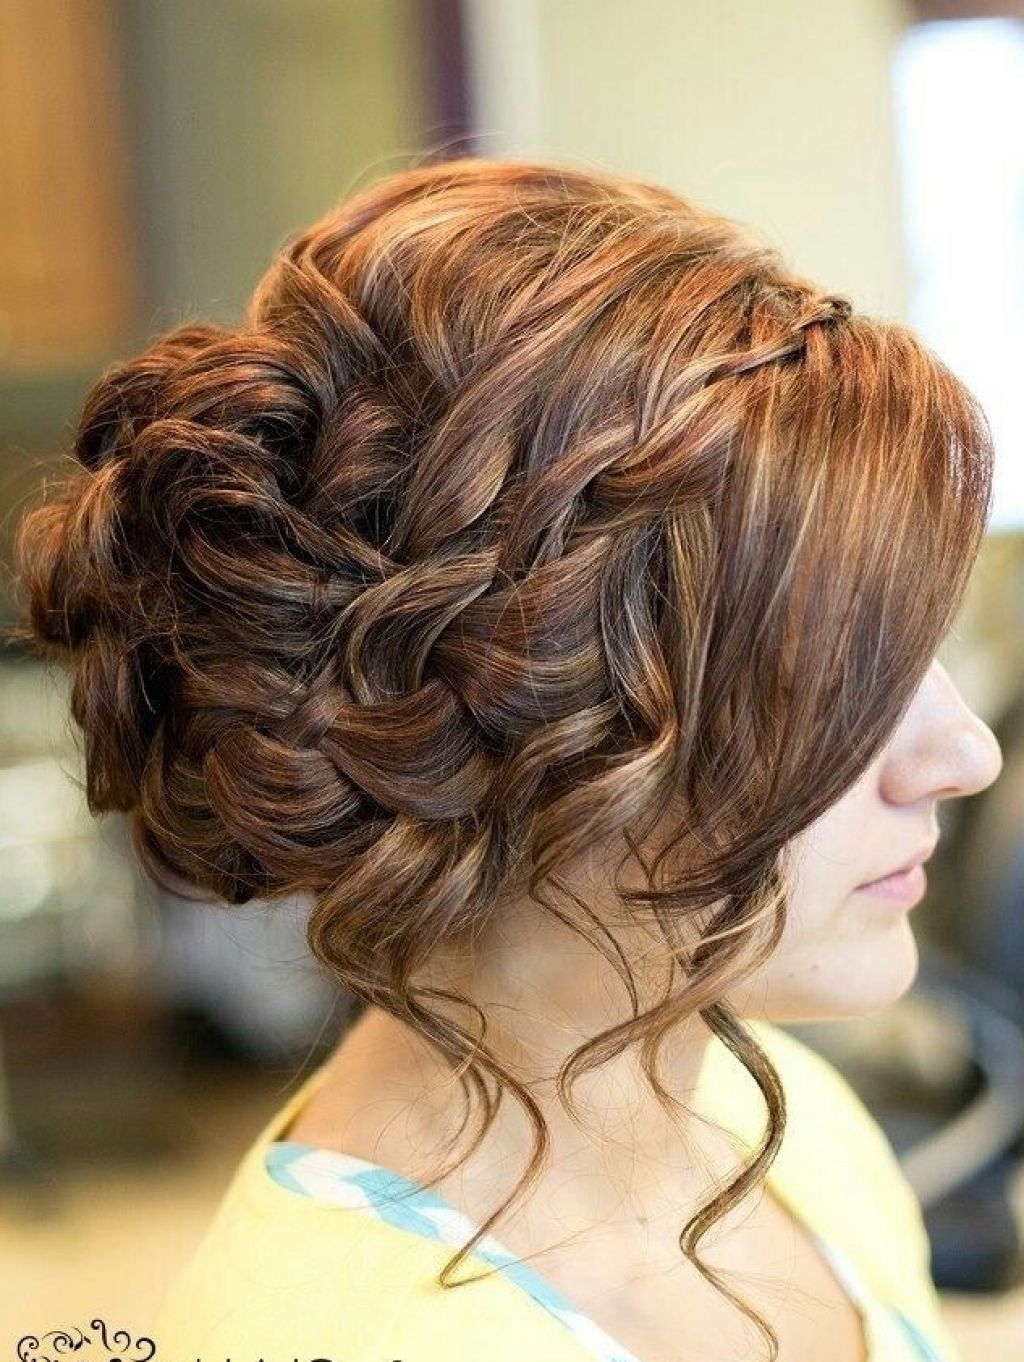 14 Prom Hairstyles For Long Hair That Are Simply Adorable Intended For Famous Multi Braid Updo Hairstyles (View 17 of 20)